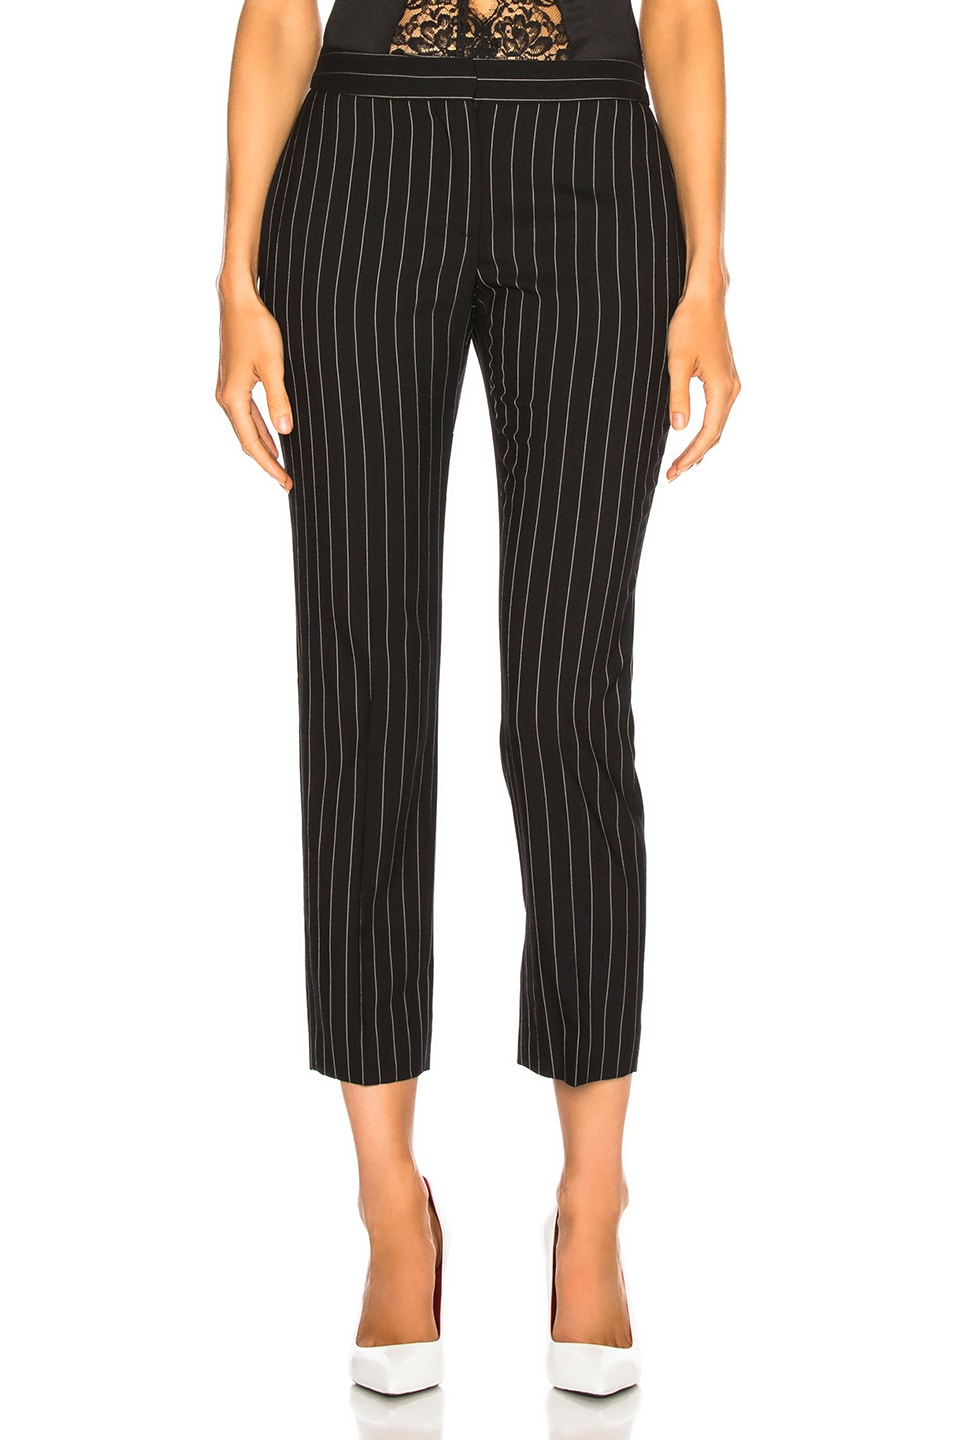 Image 1 of Alexander McQueen Pinstripe Cigarette Trousers in Black & White